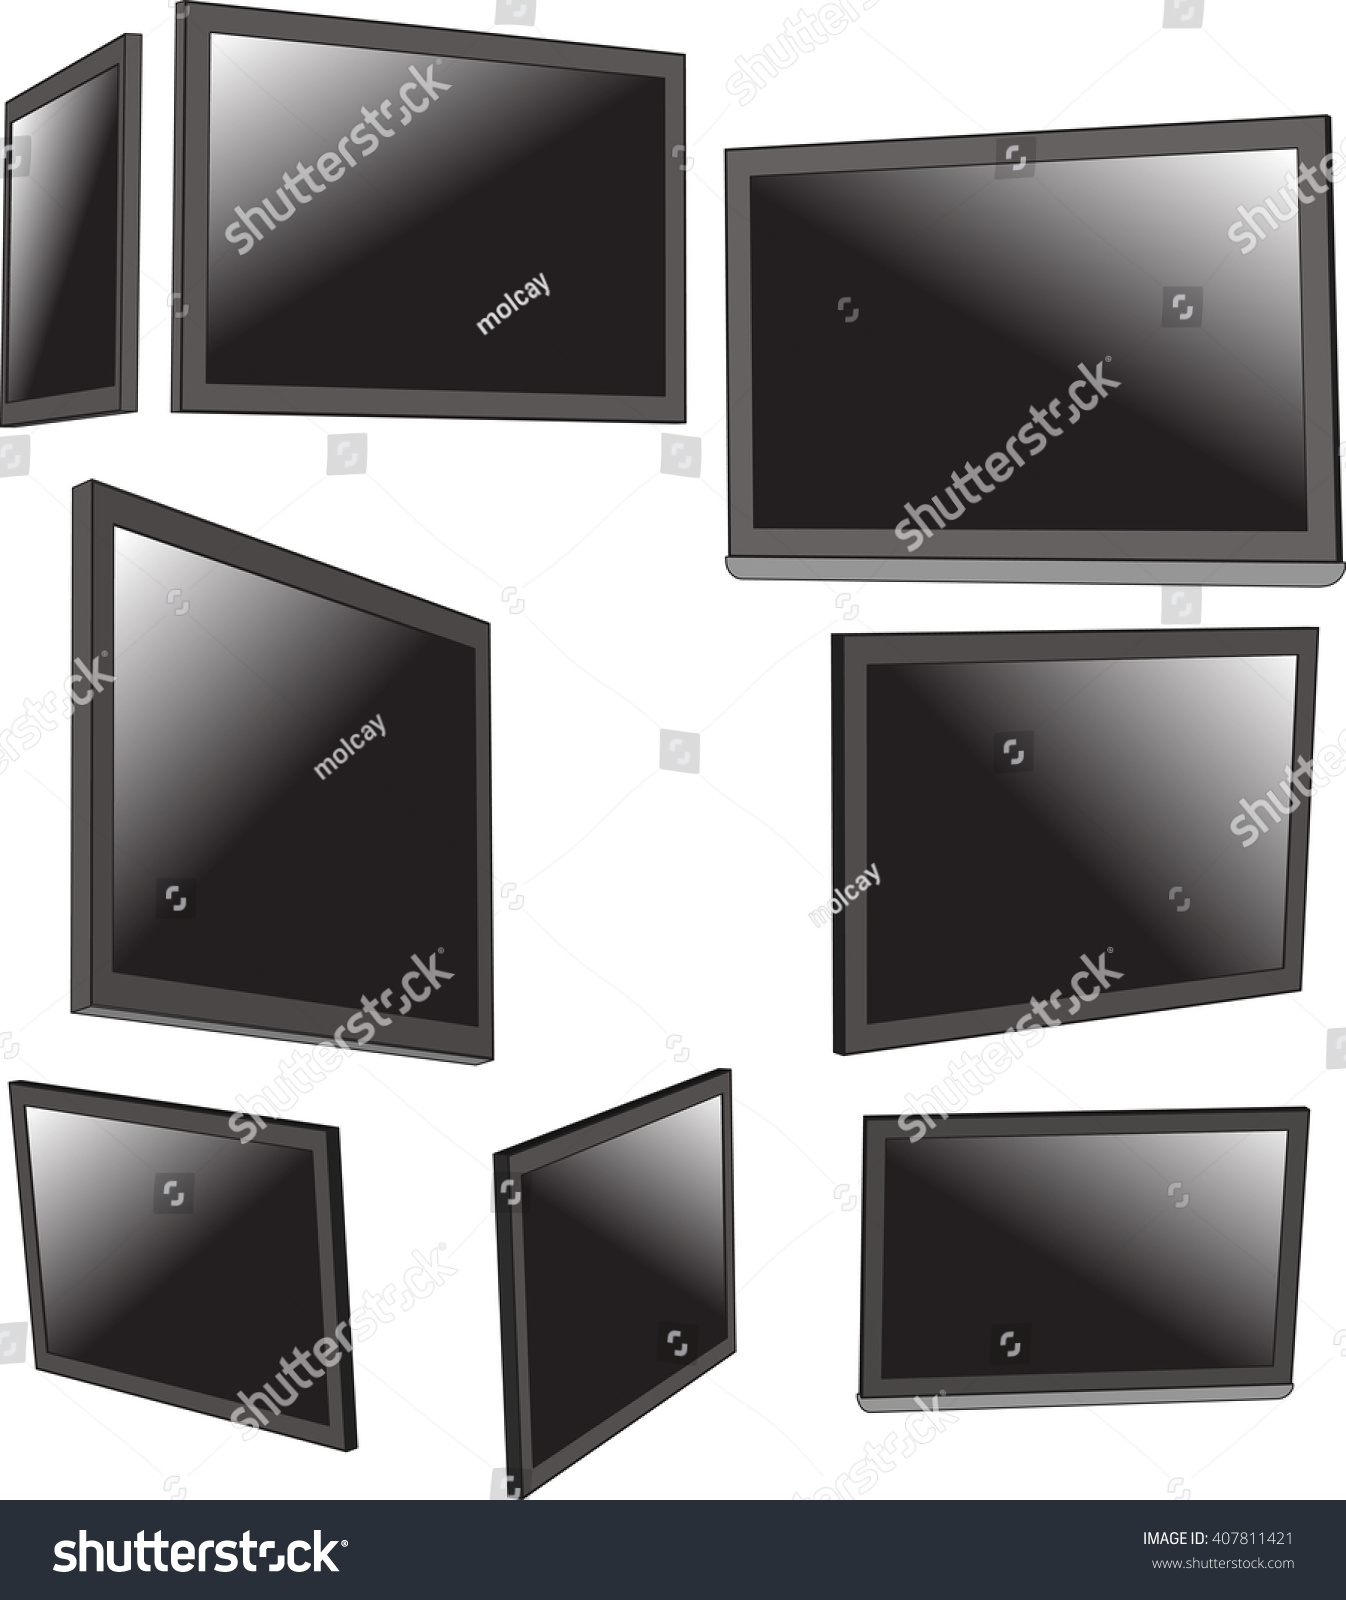 Tv Frame Stock Photo (Photo, Vector, Illustration) 407811421 ...